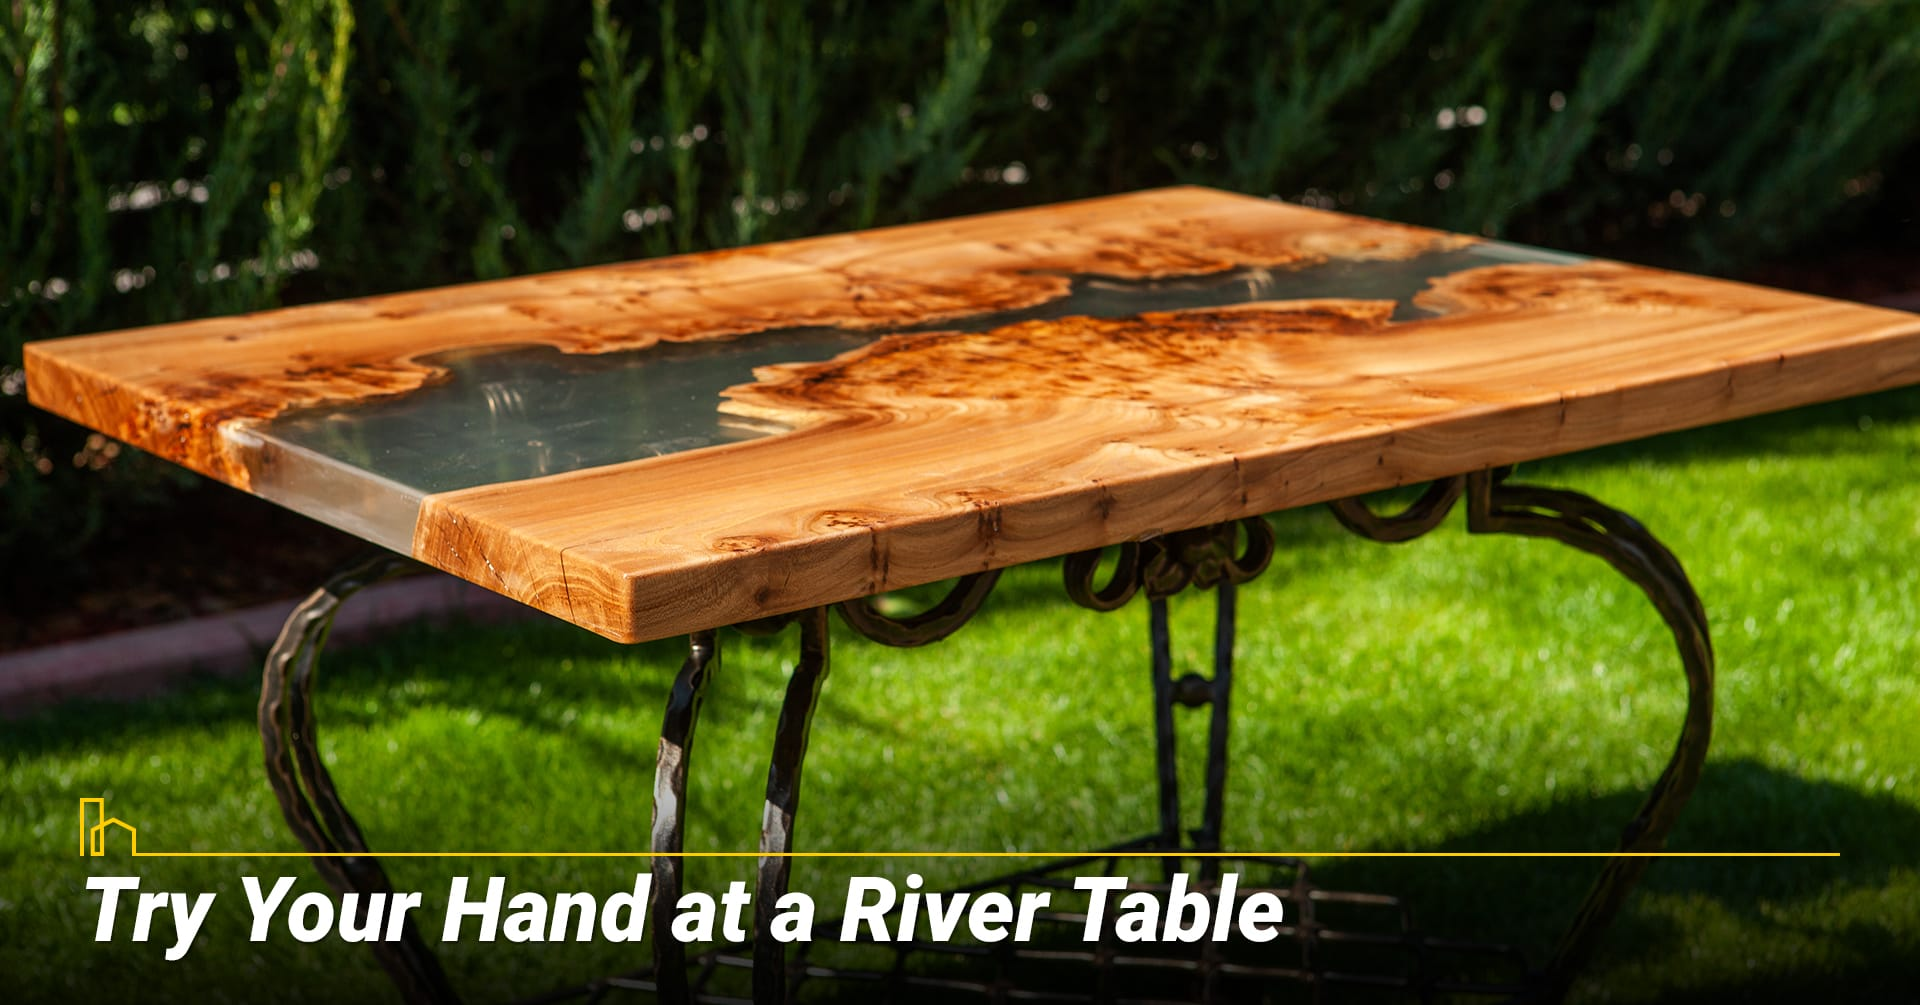 Try Your Hand at a River Table, DIY Epoxy Resin tabletop